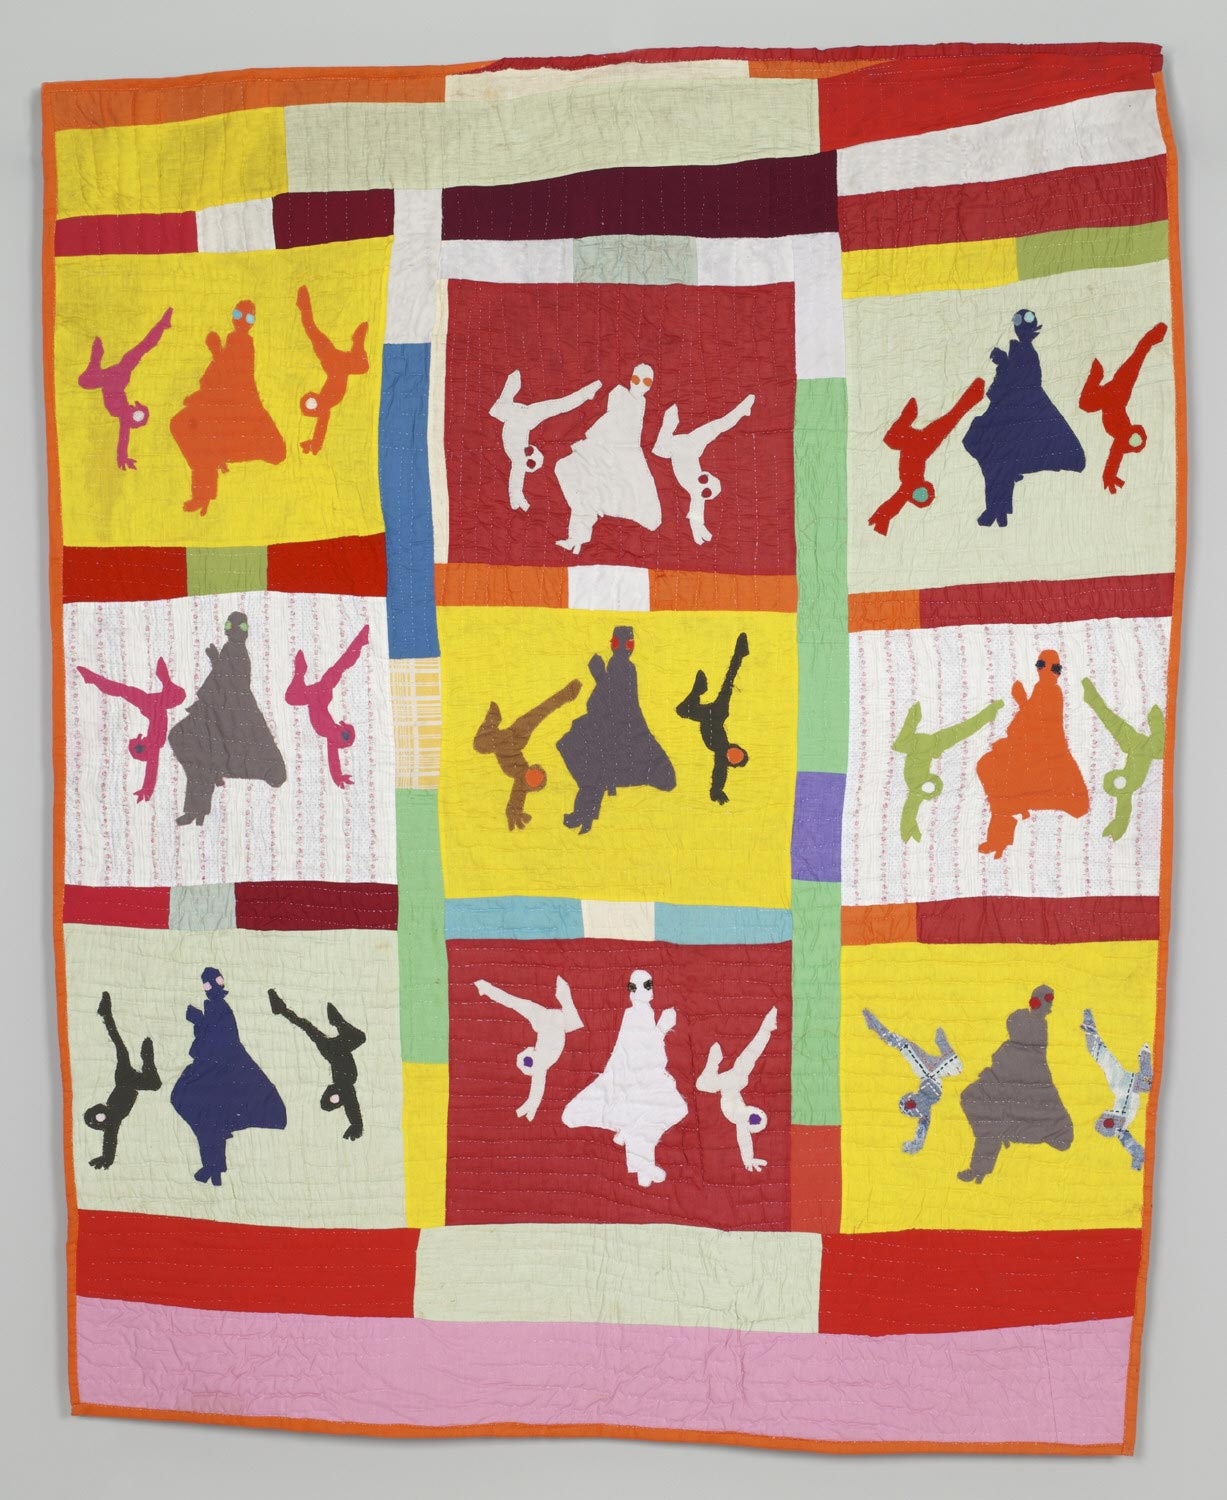 Image of a quilt, shadow images of children exercising against brightly colored blocks of fabric.